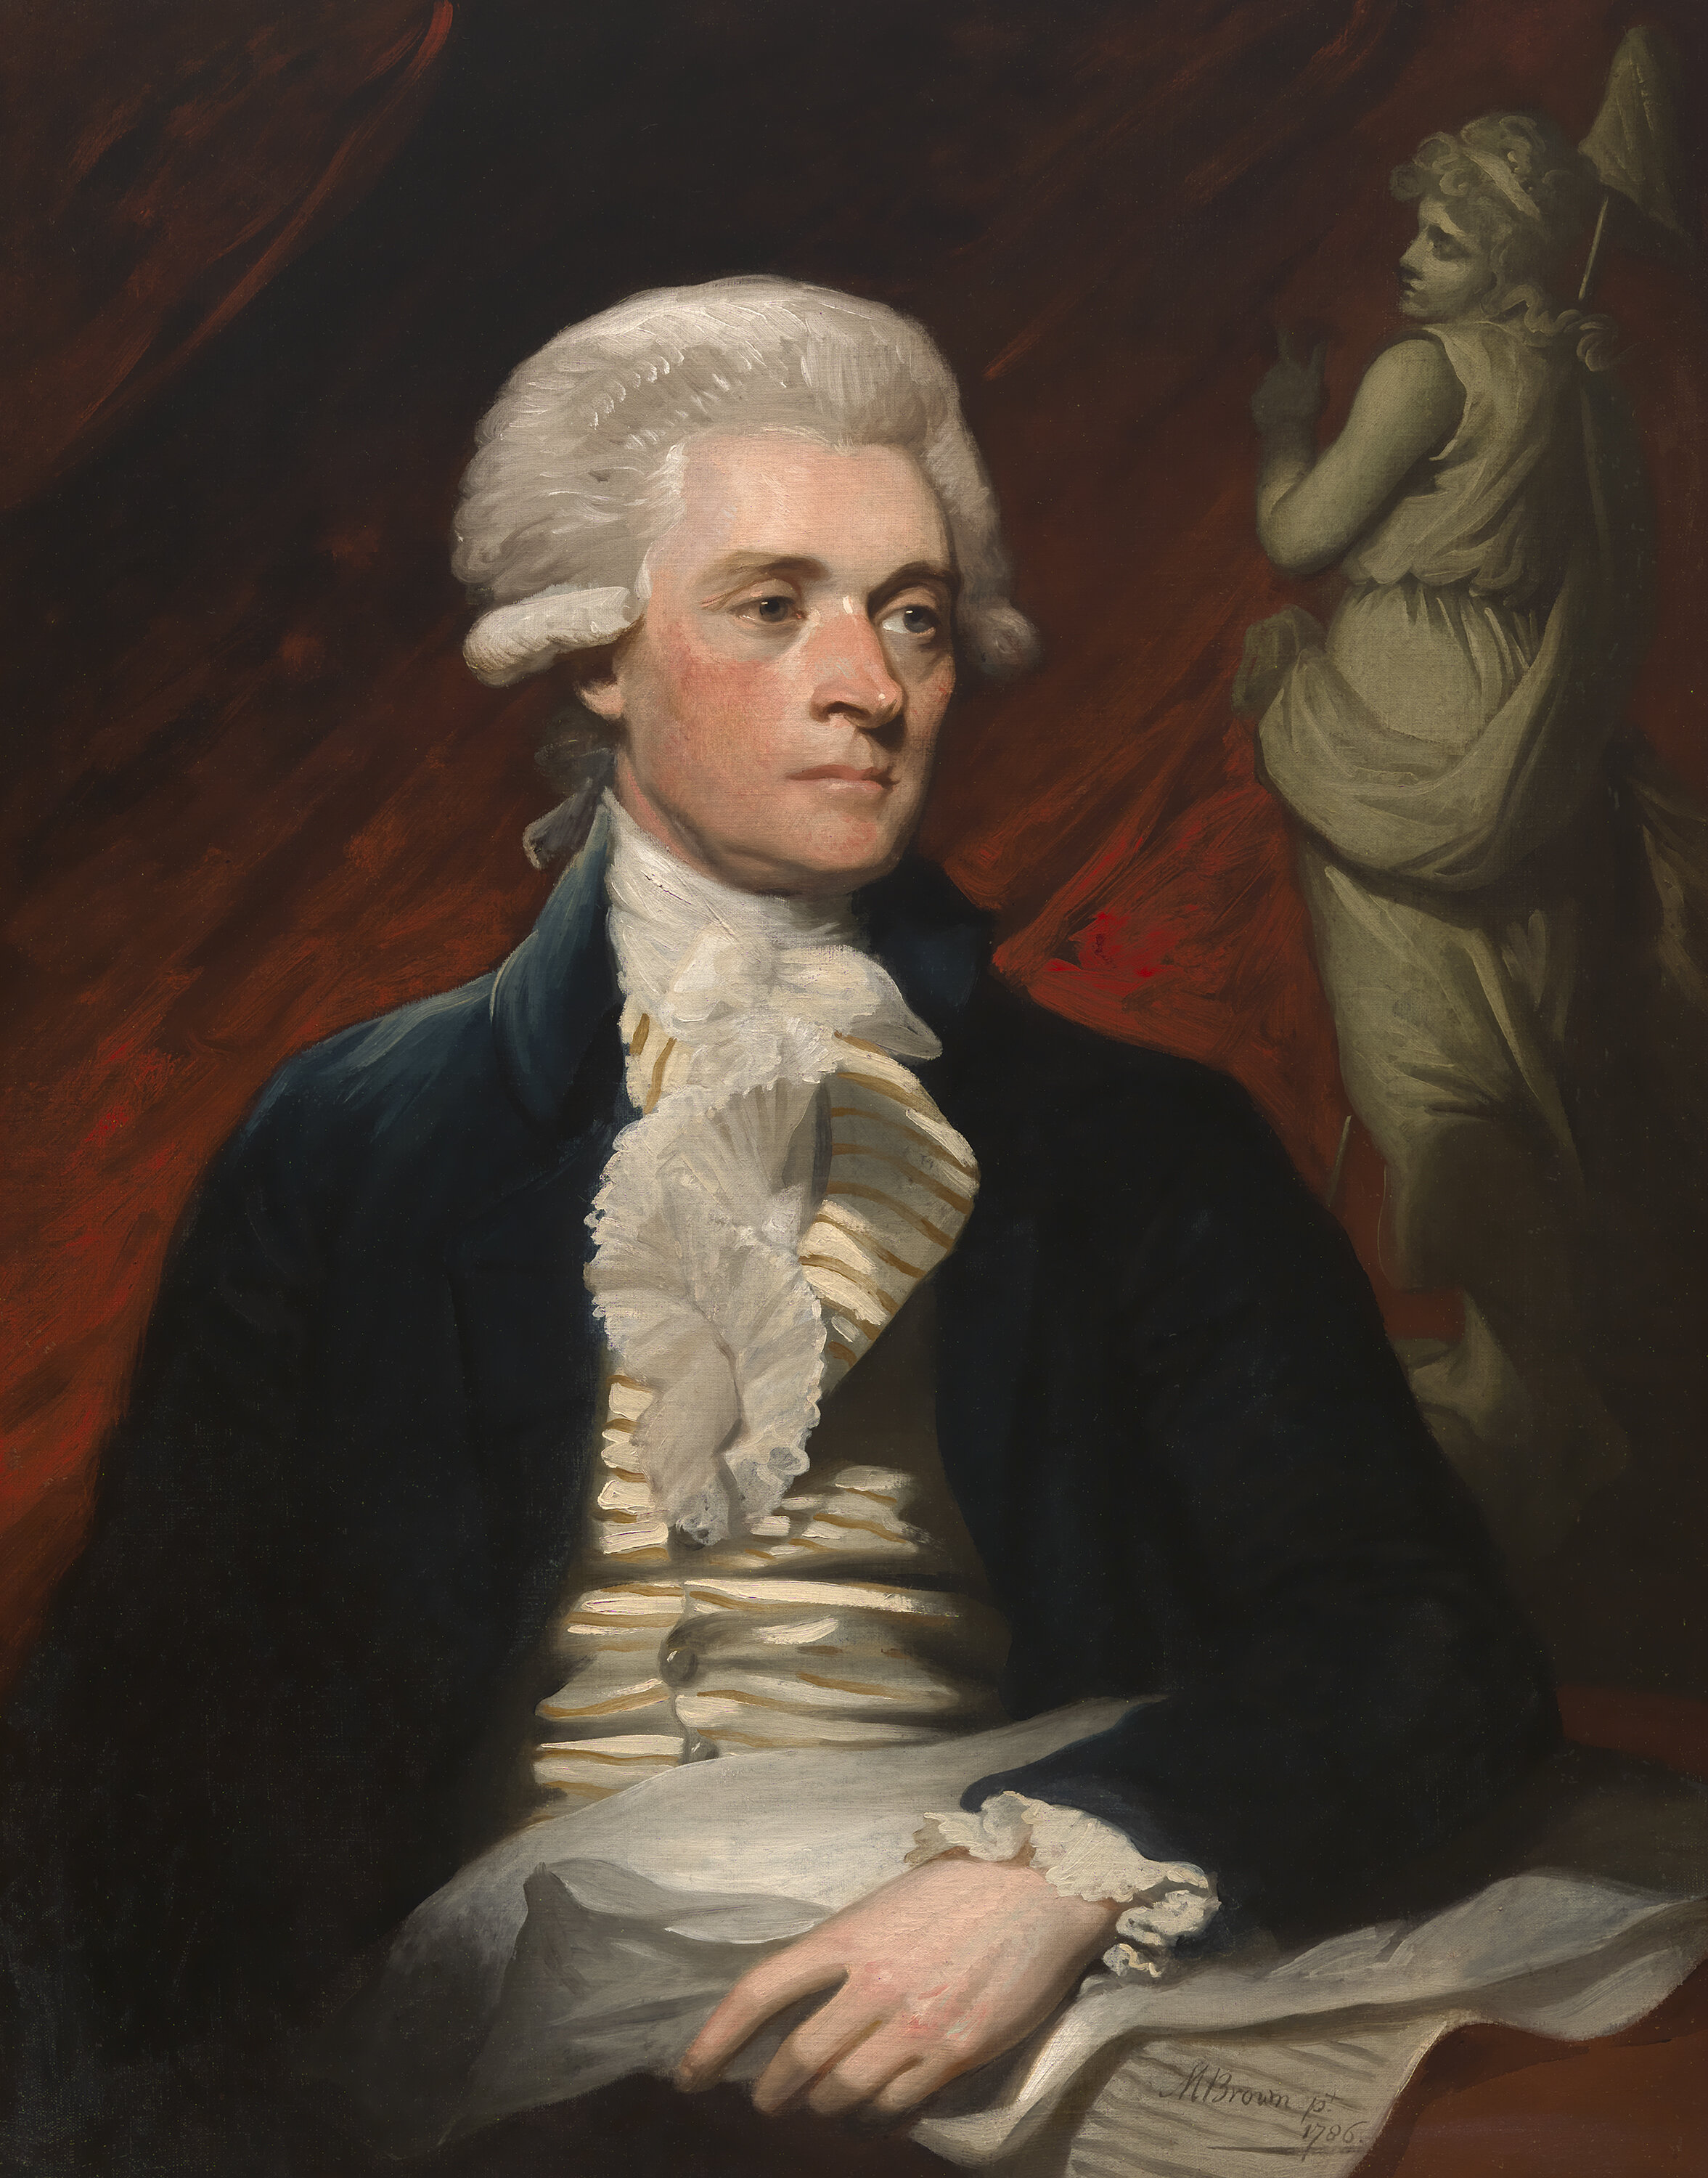 1786 Portrait of Thomas Jefferson by Mather Brown